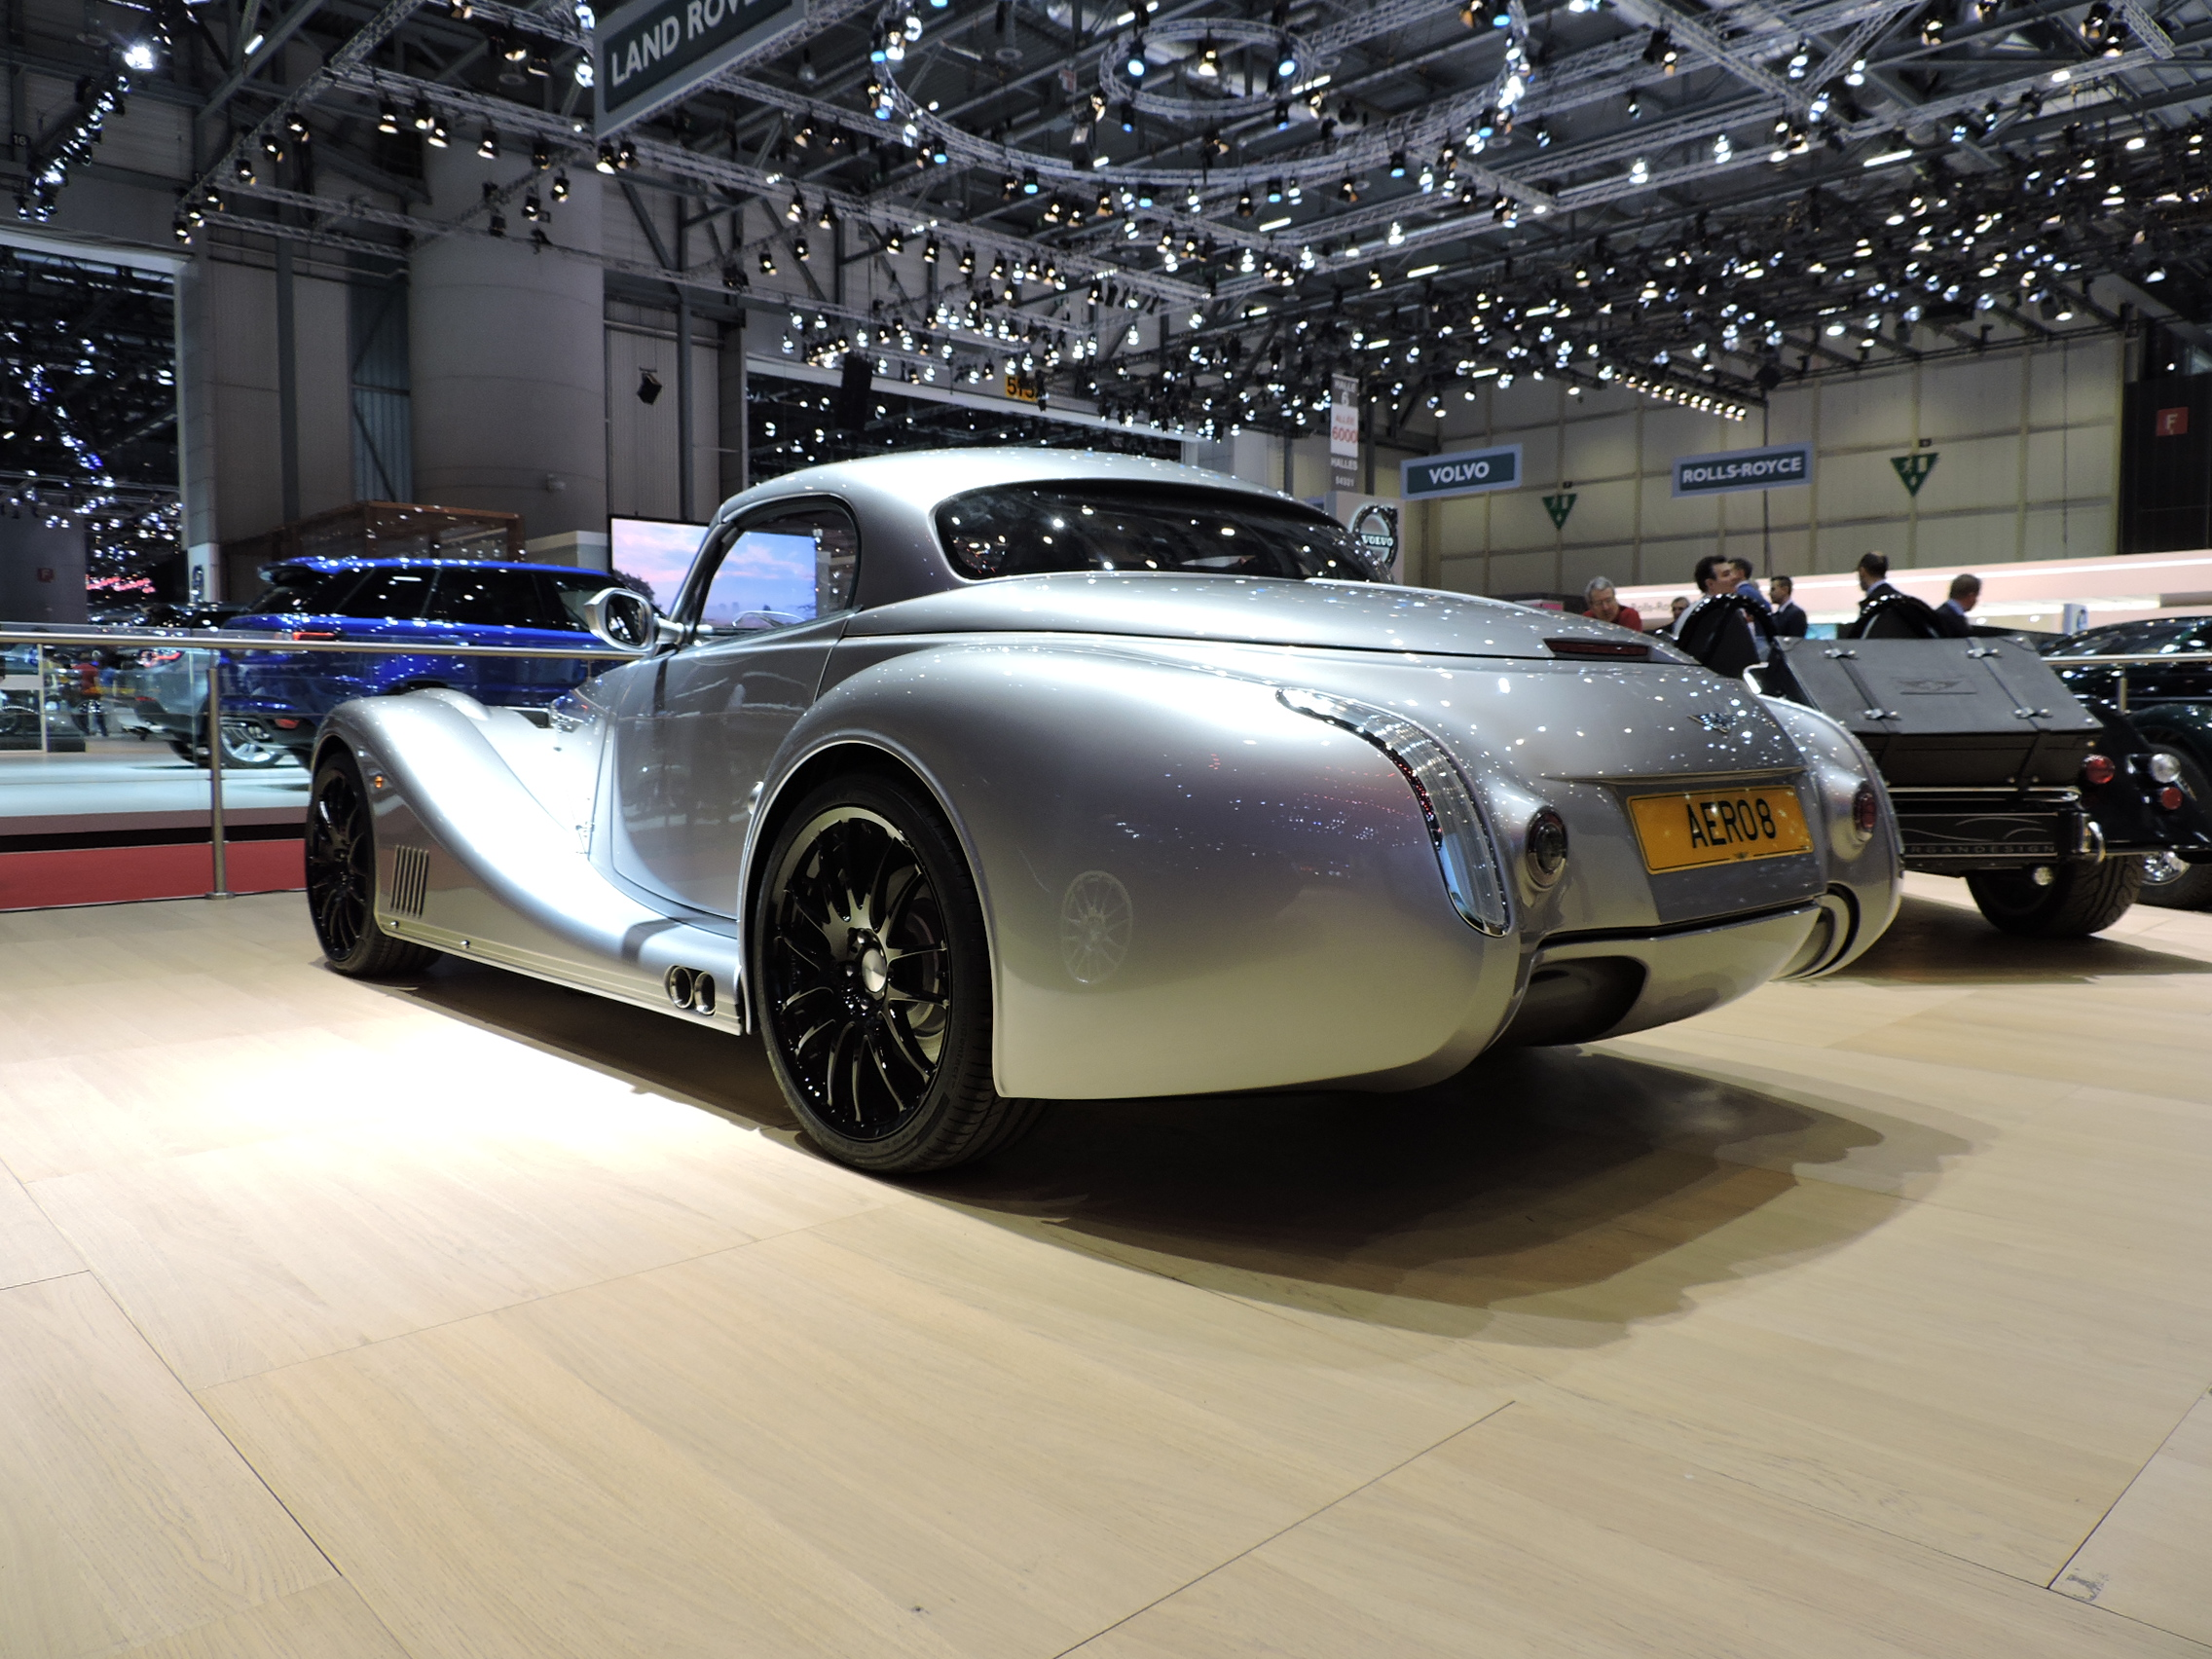 morgan aero 8 looks cruella in de ville of geneva news. Black Bedroom Furniture Sets. Home Design Ideas